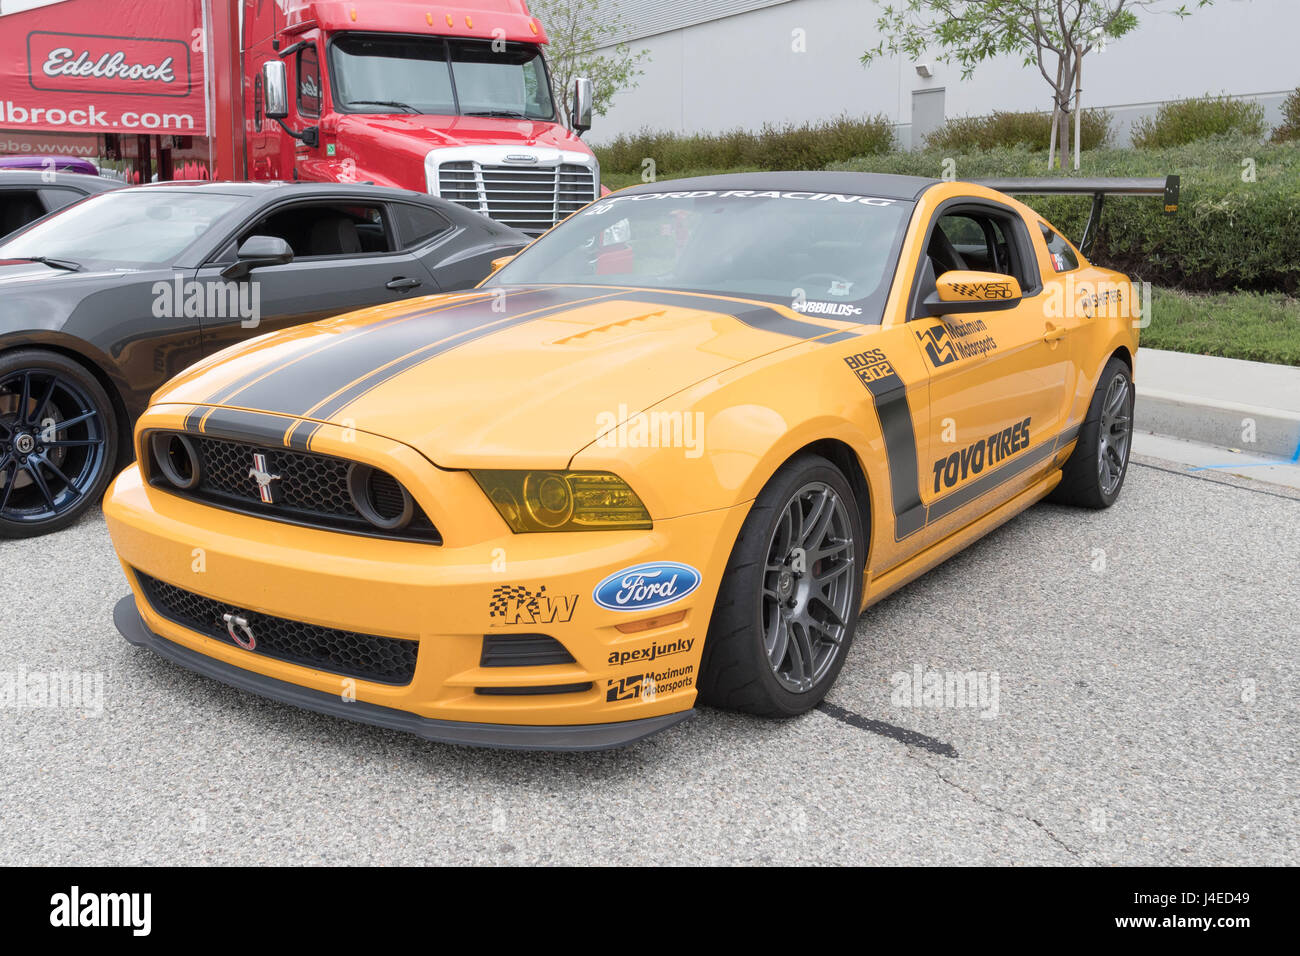 Torrance usa may 5 2017 ford mustang 5th generation on display during 12th annual edelbrock car show